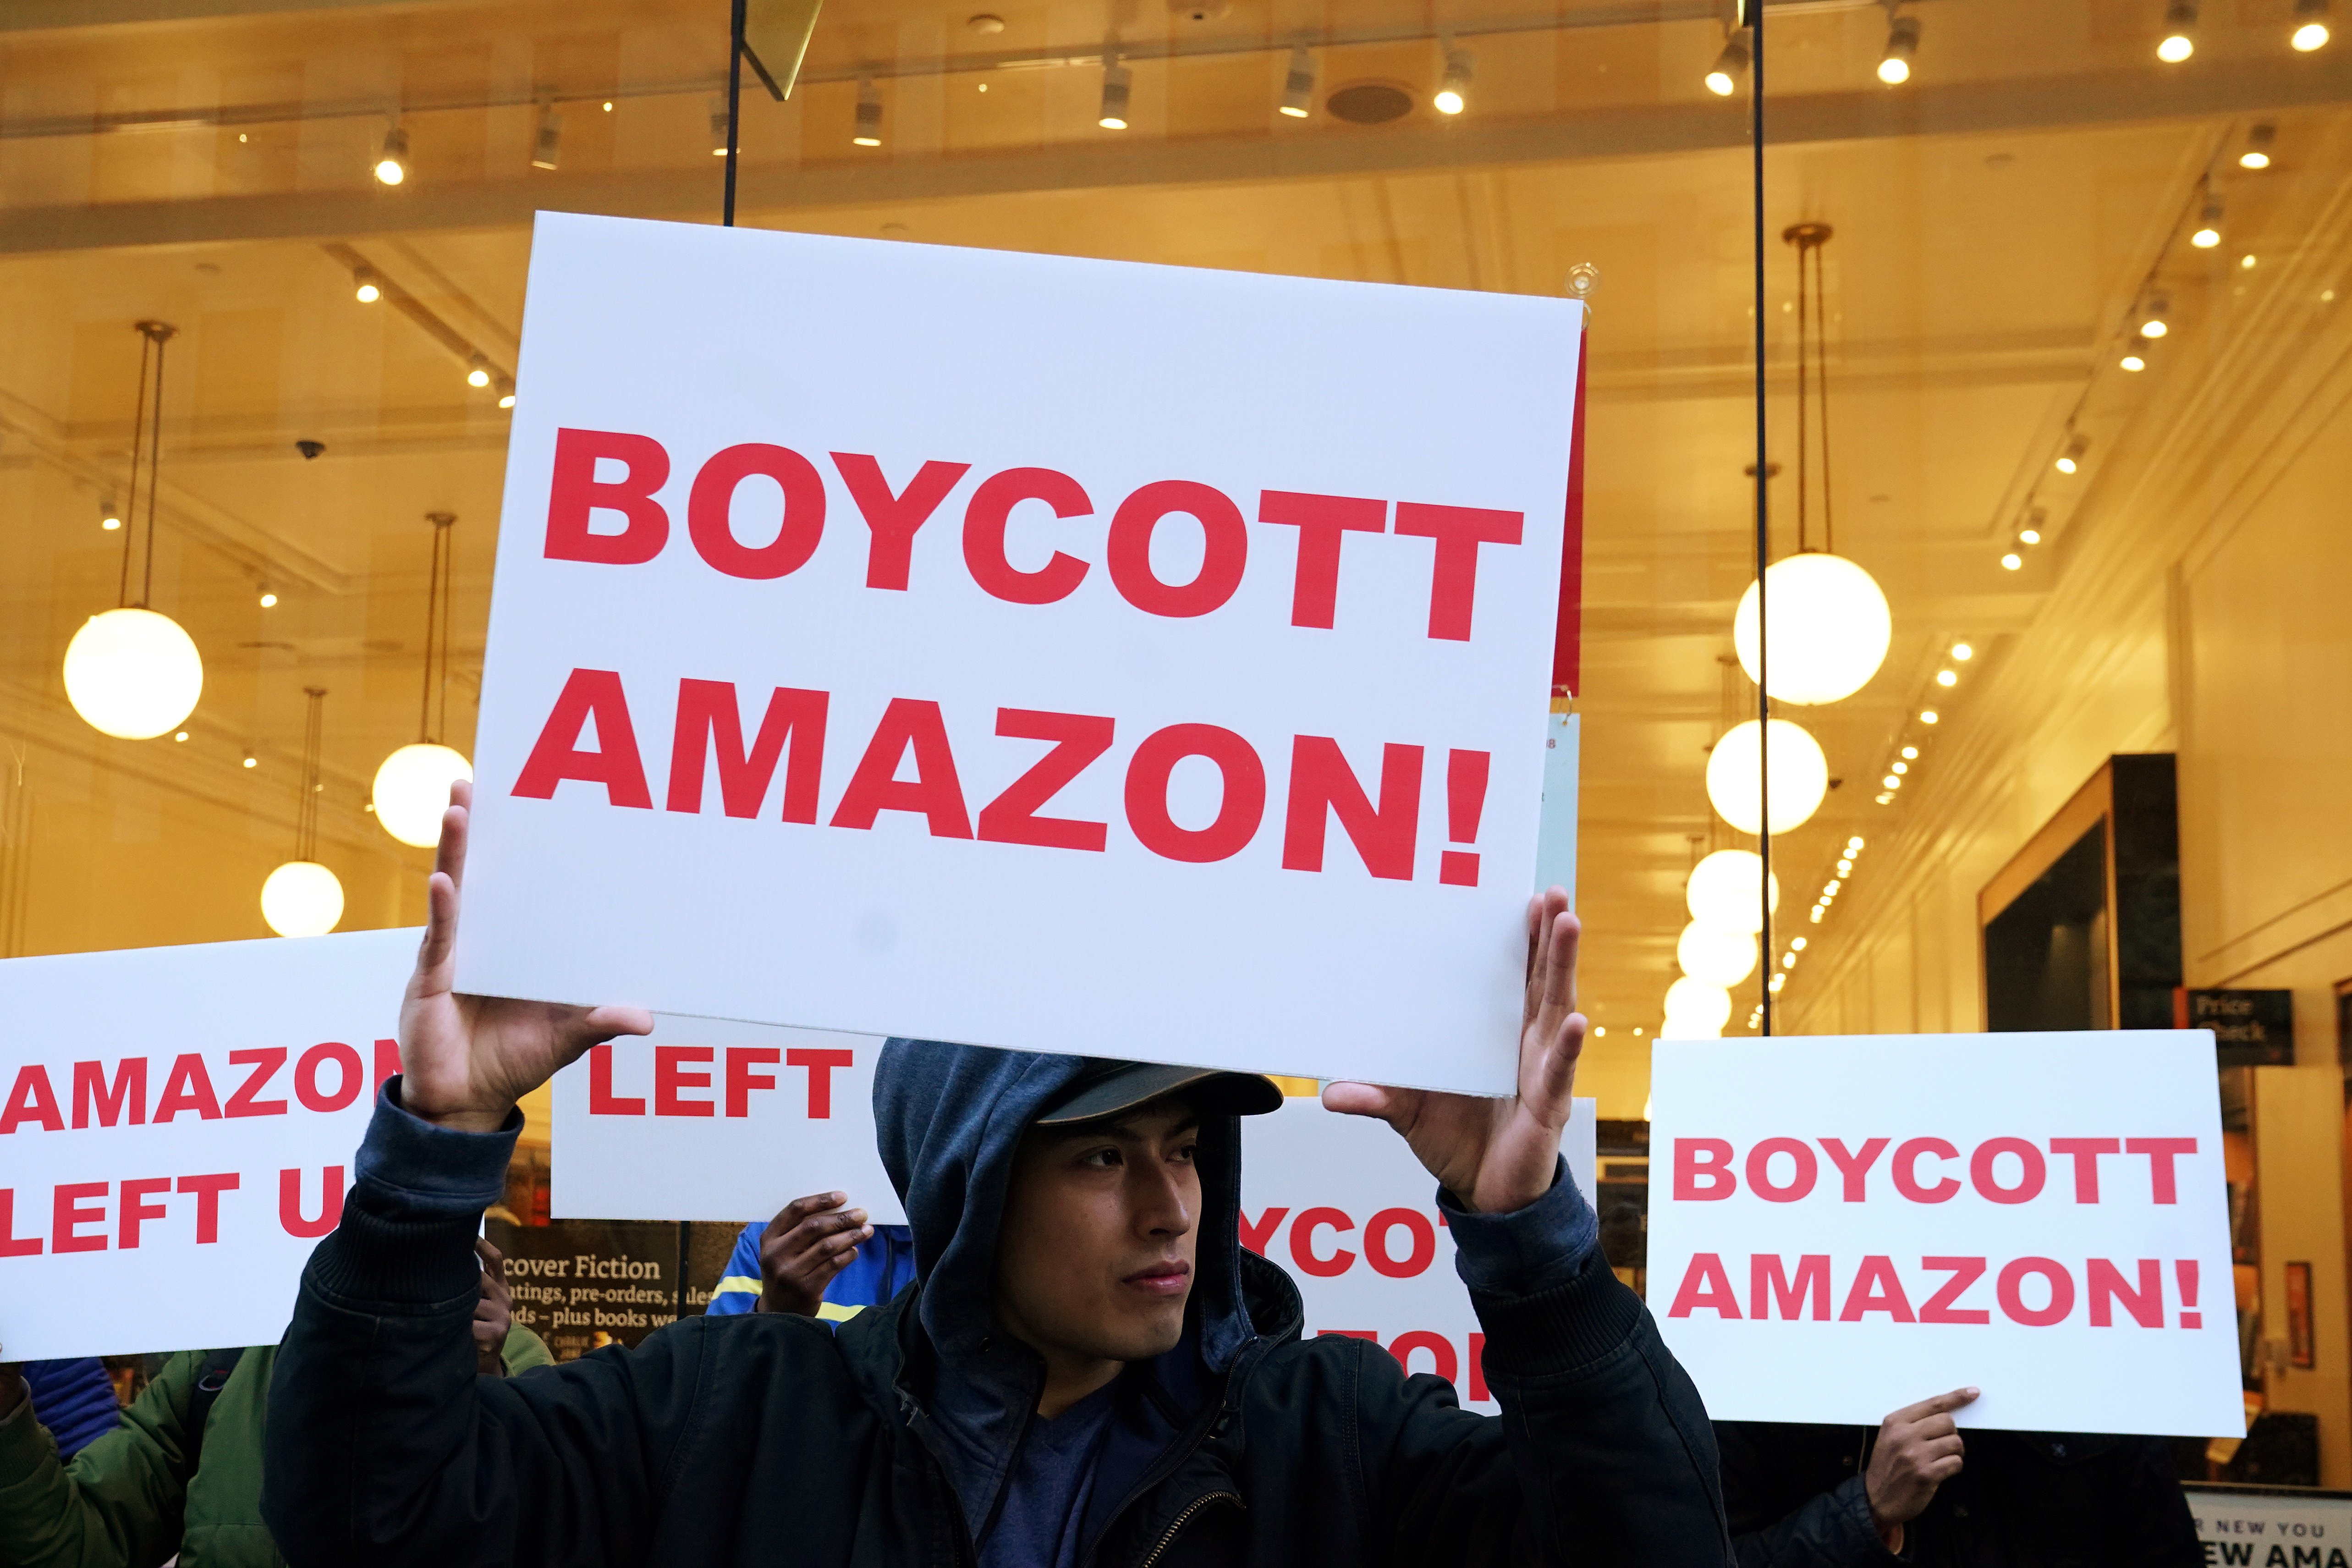 People stand in front of an Amazon store and protest Amazon's change in mind to not open an office in Queens, in the Manhattan borough of New York City, New York, U.S., February 15, 2019. REUTERS/Carlo Allegri